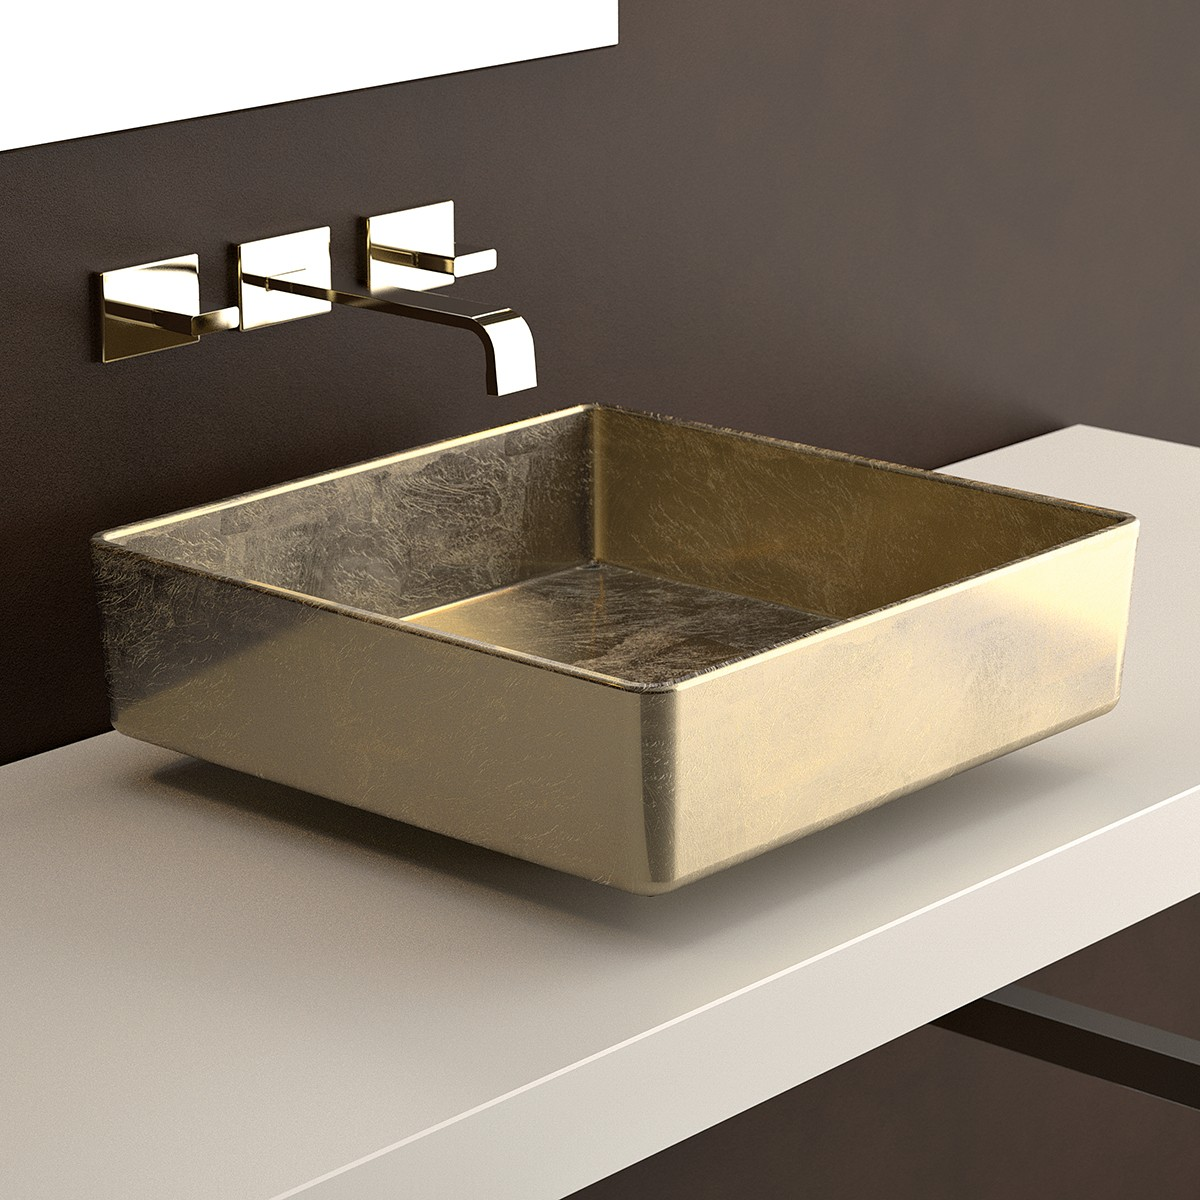 ws-bath-collections-four-lux-vessel-bathroom-sink-in-gold-leaf